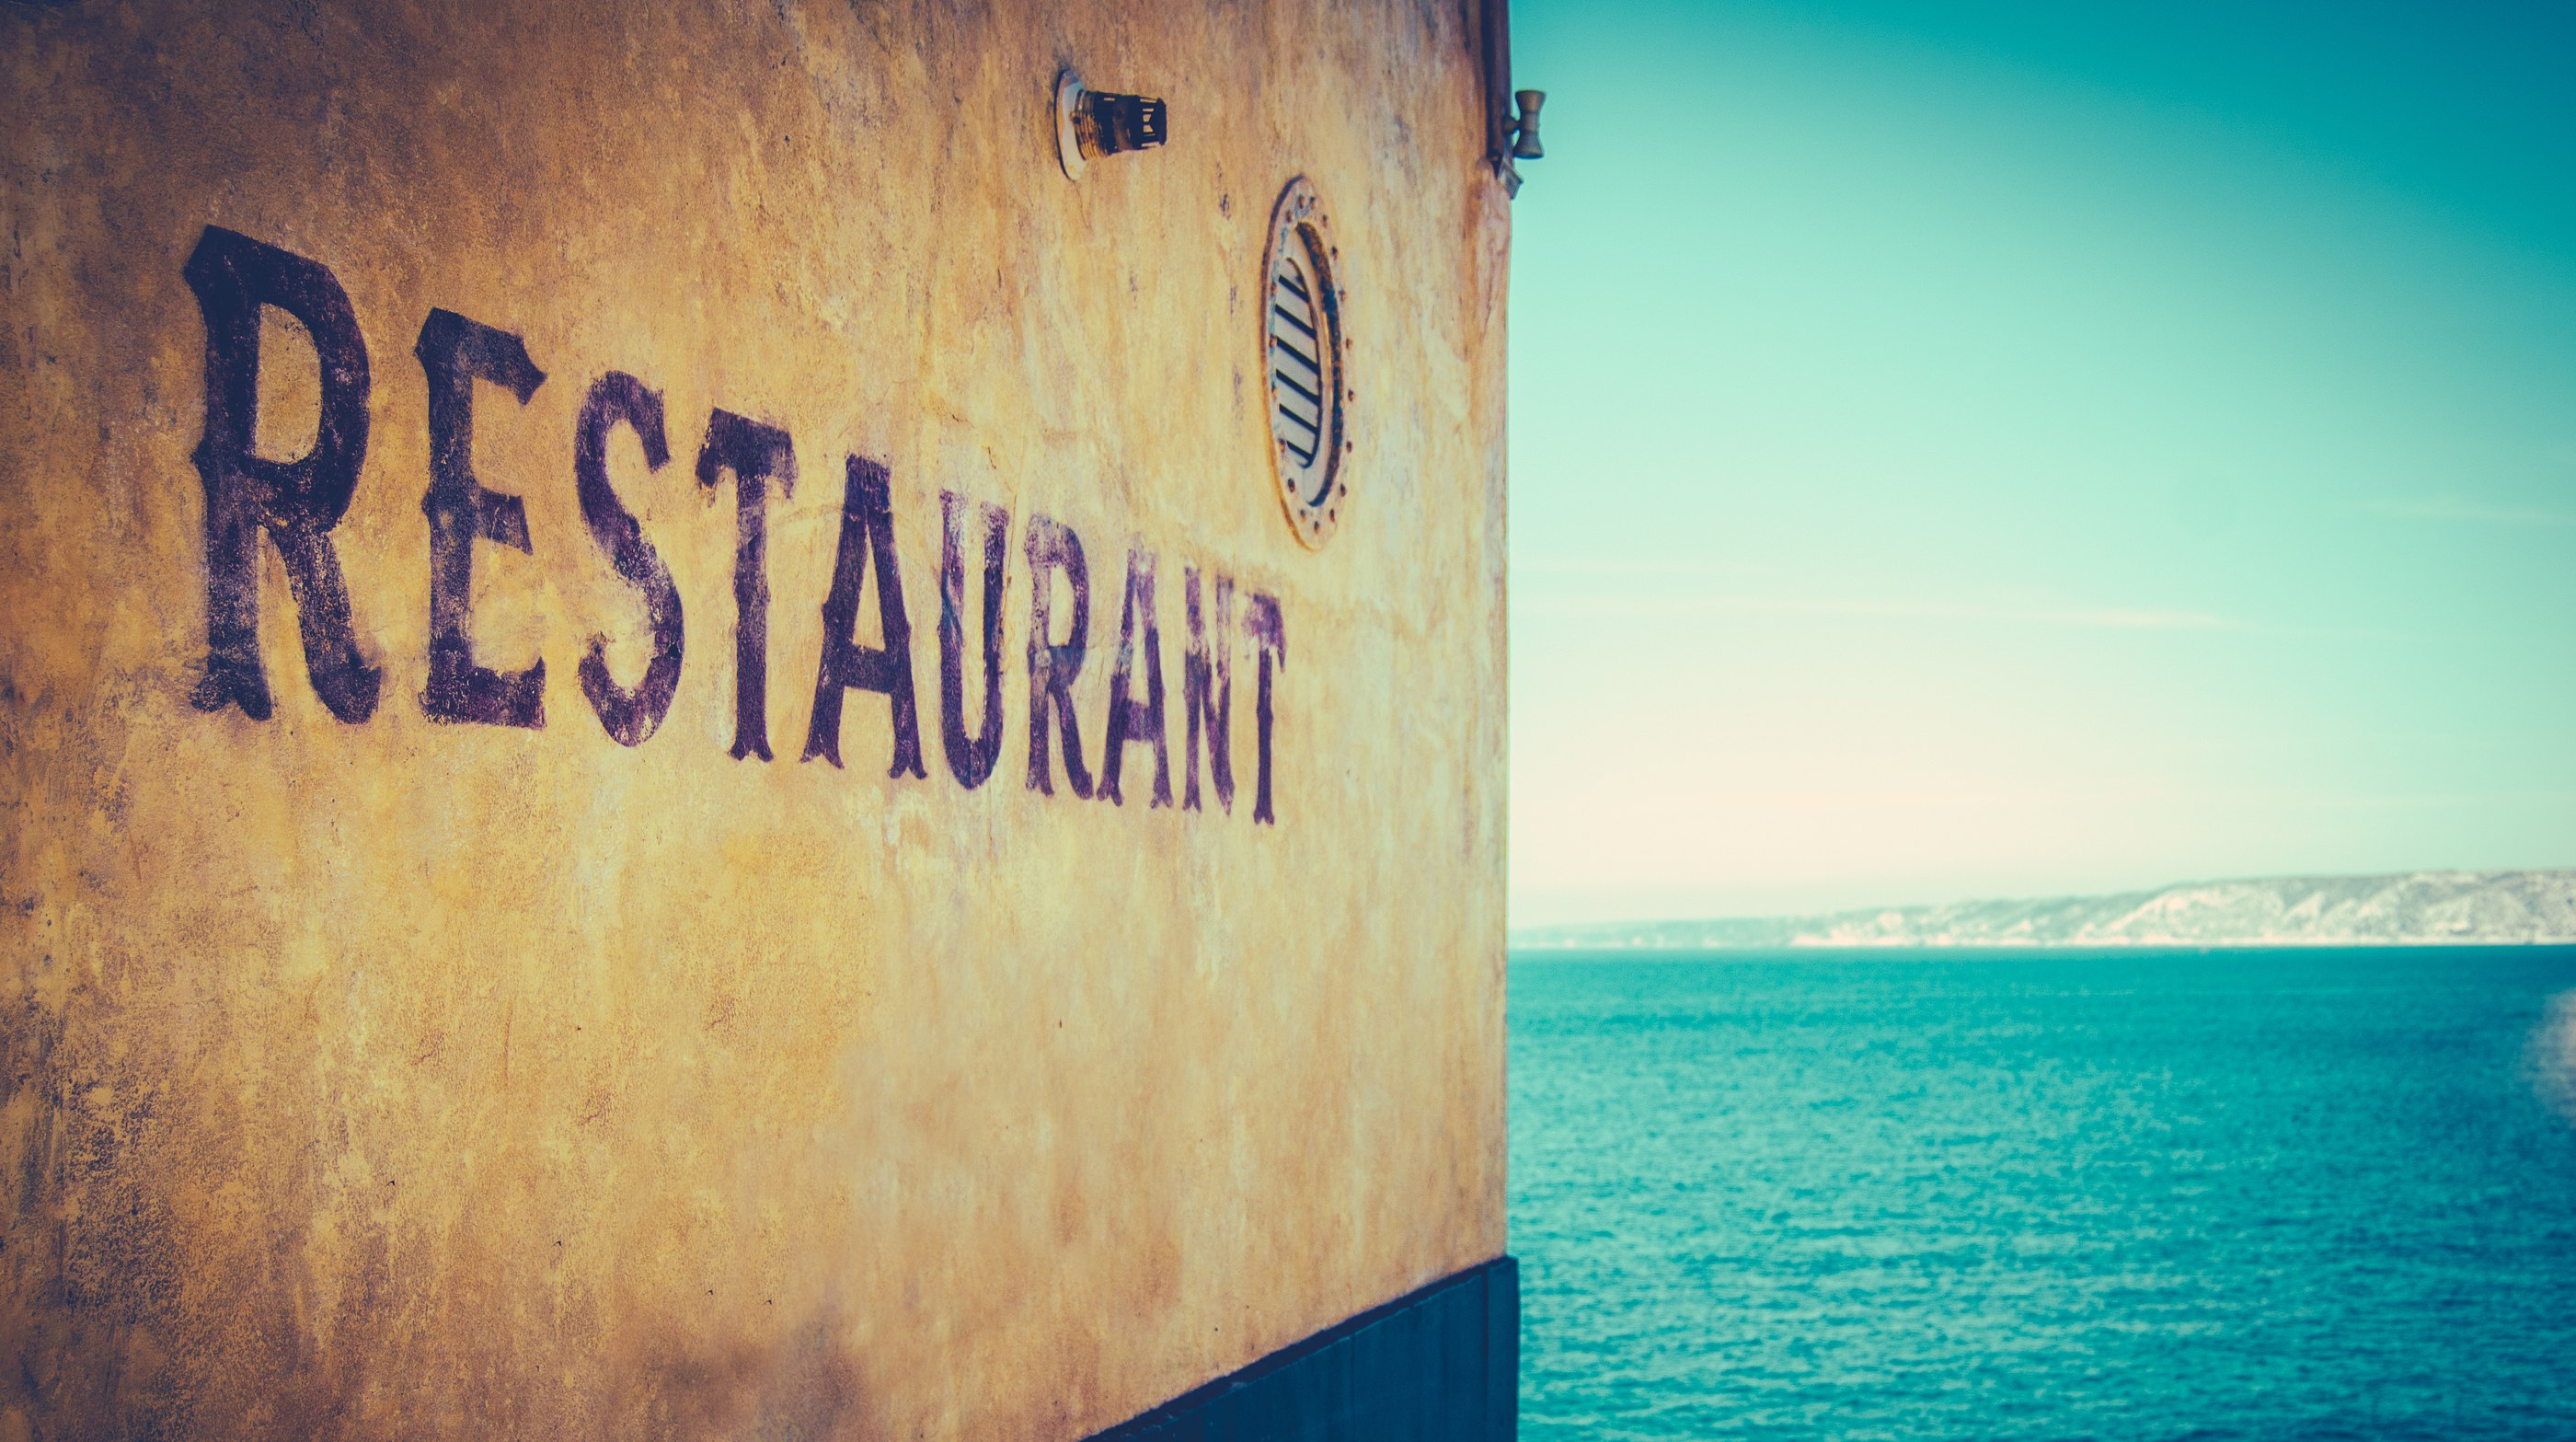 Retro Photo Of Rustic Restaurant By The Sea In Marseille South Of France